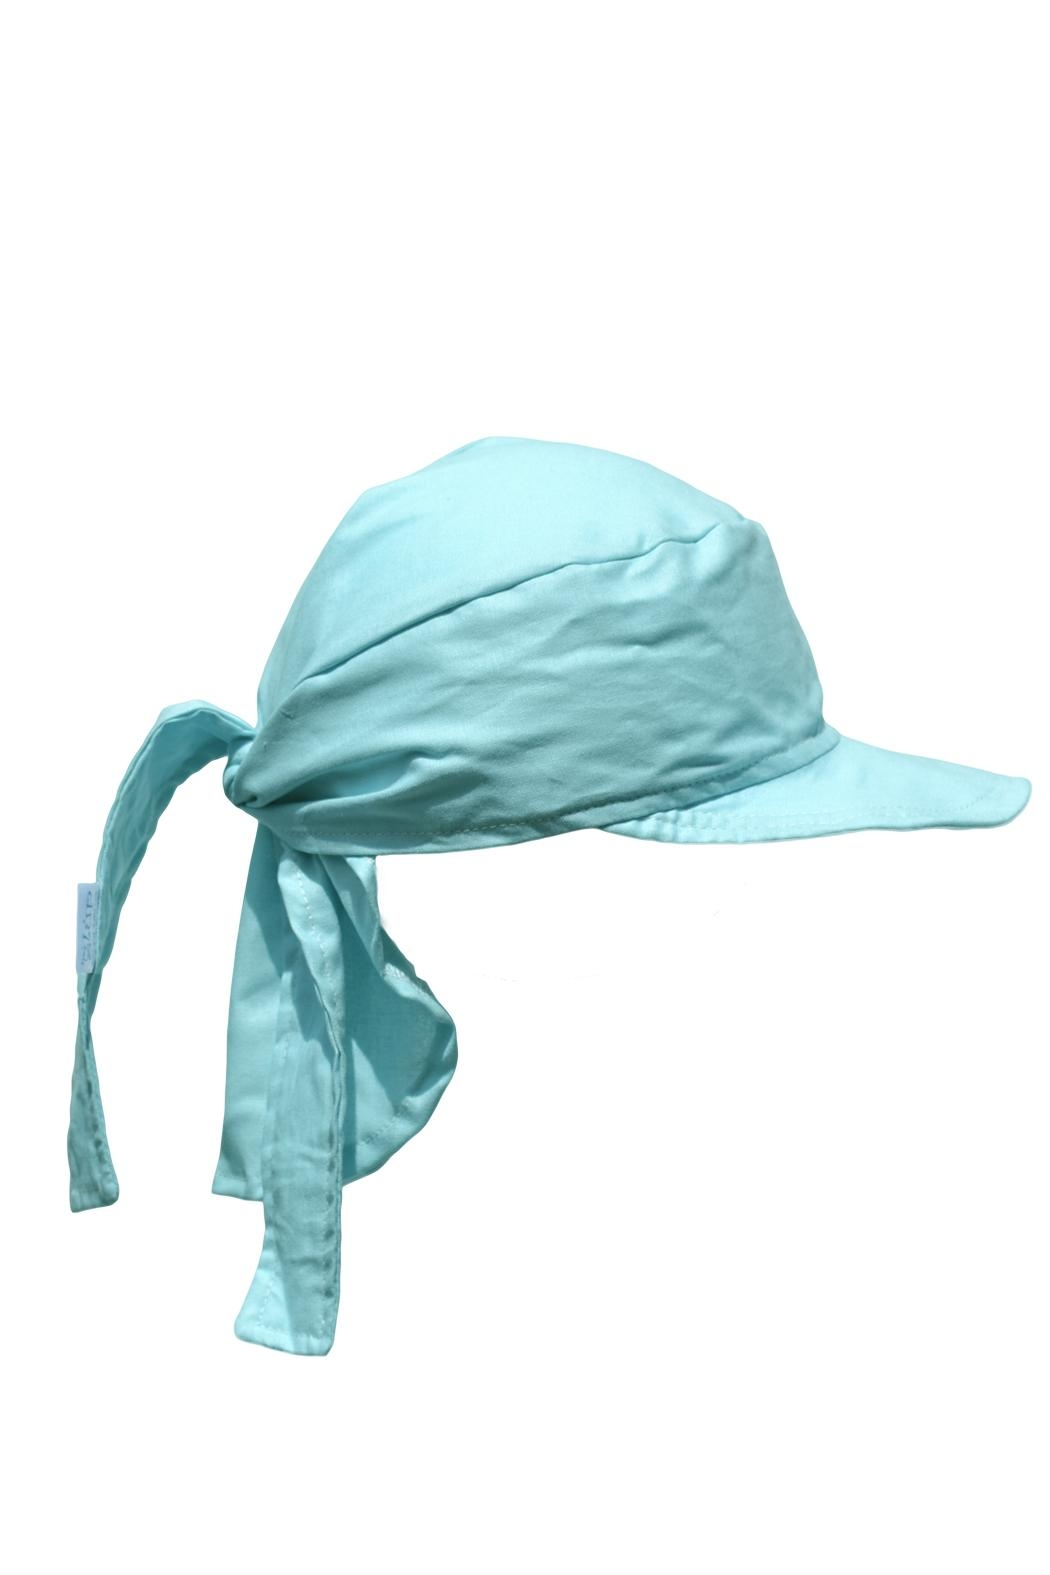 Glup Turquoise Adjustable Cap - Main Image